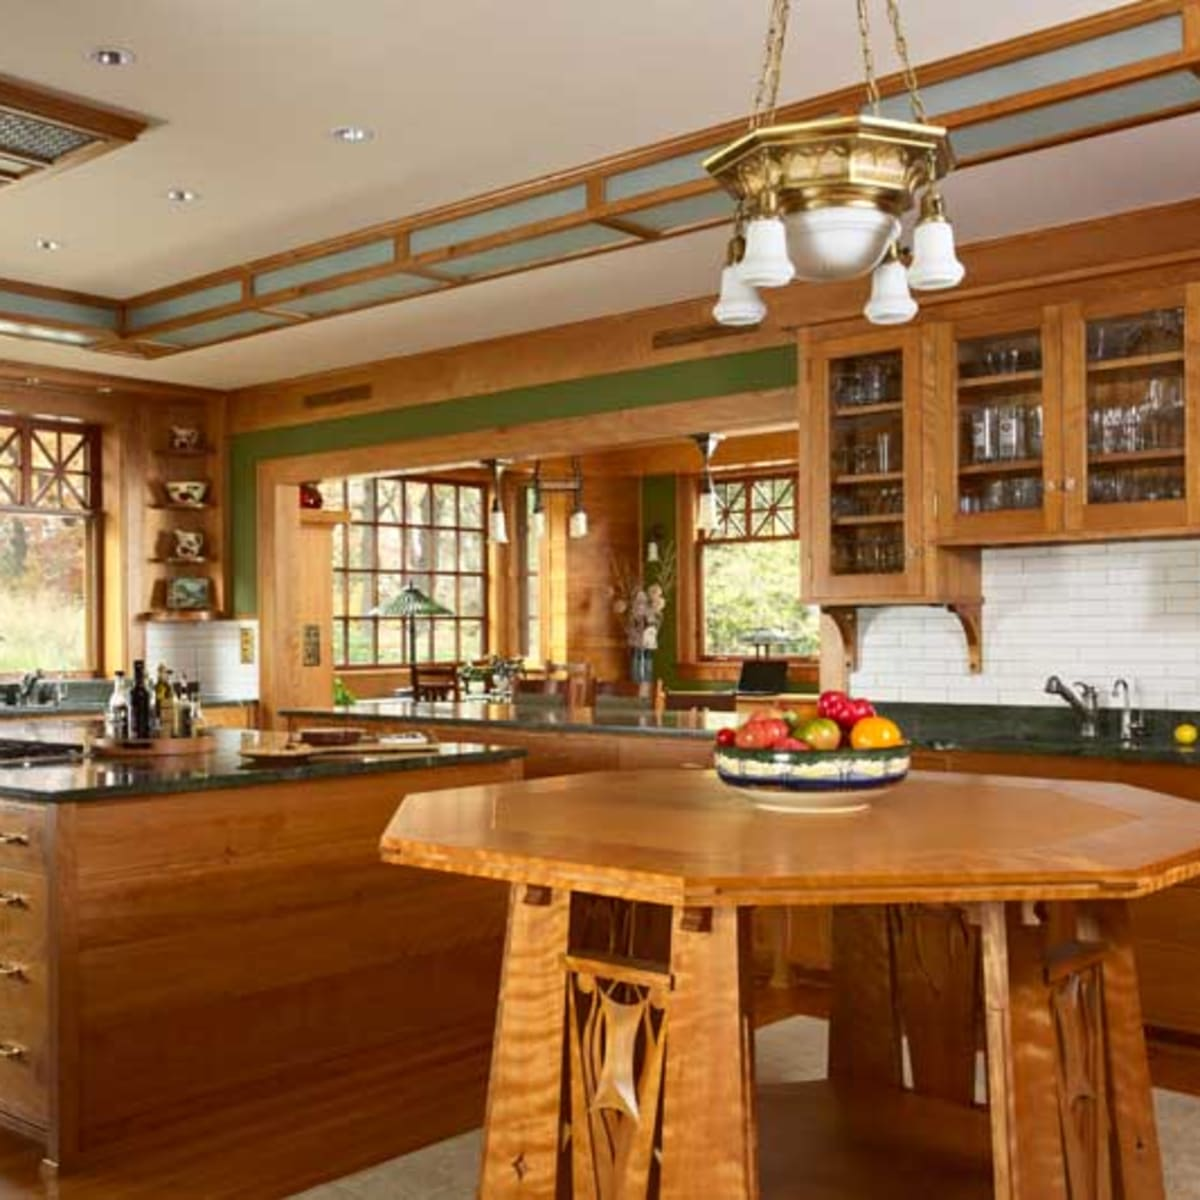 a kitchen of art and craft - design for the arts & crafts